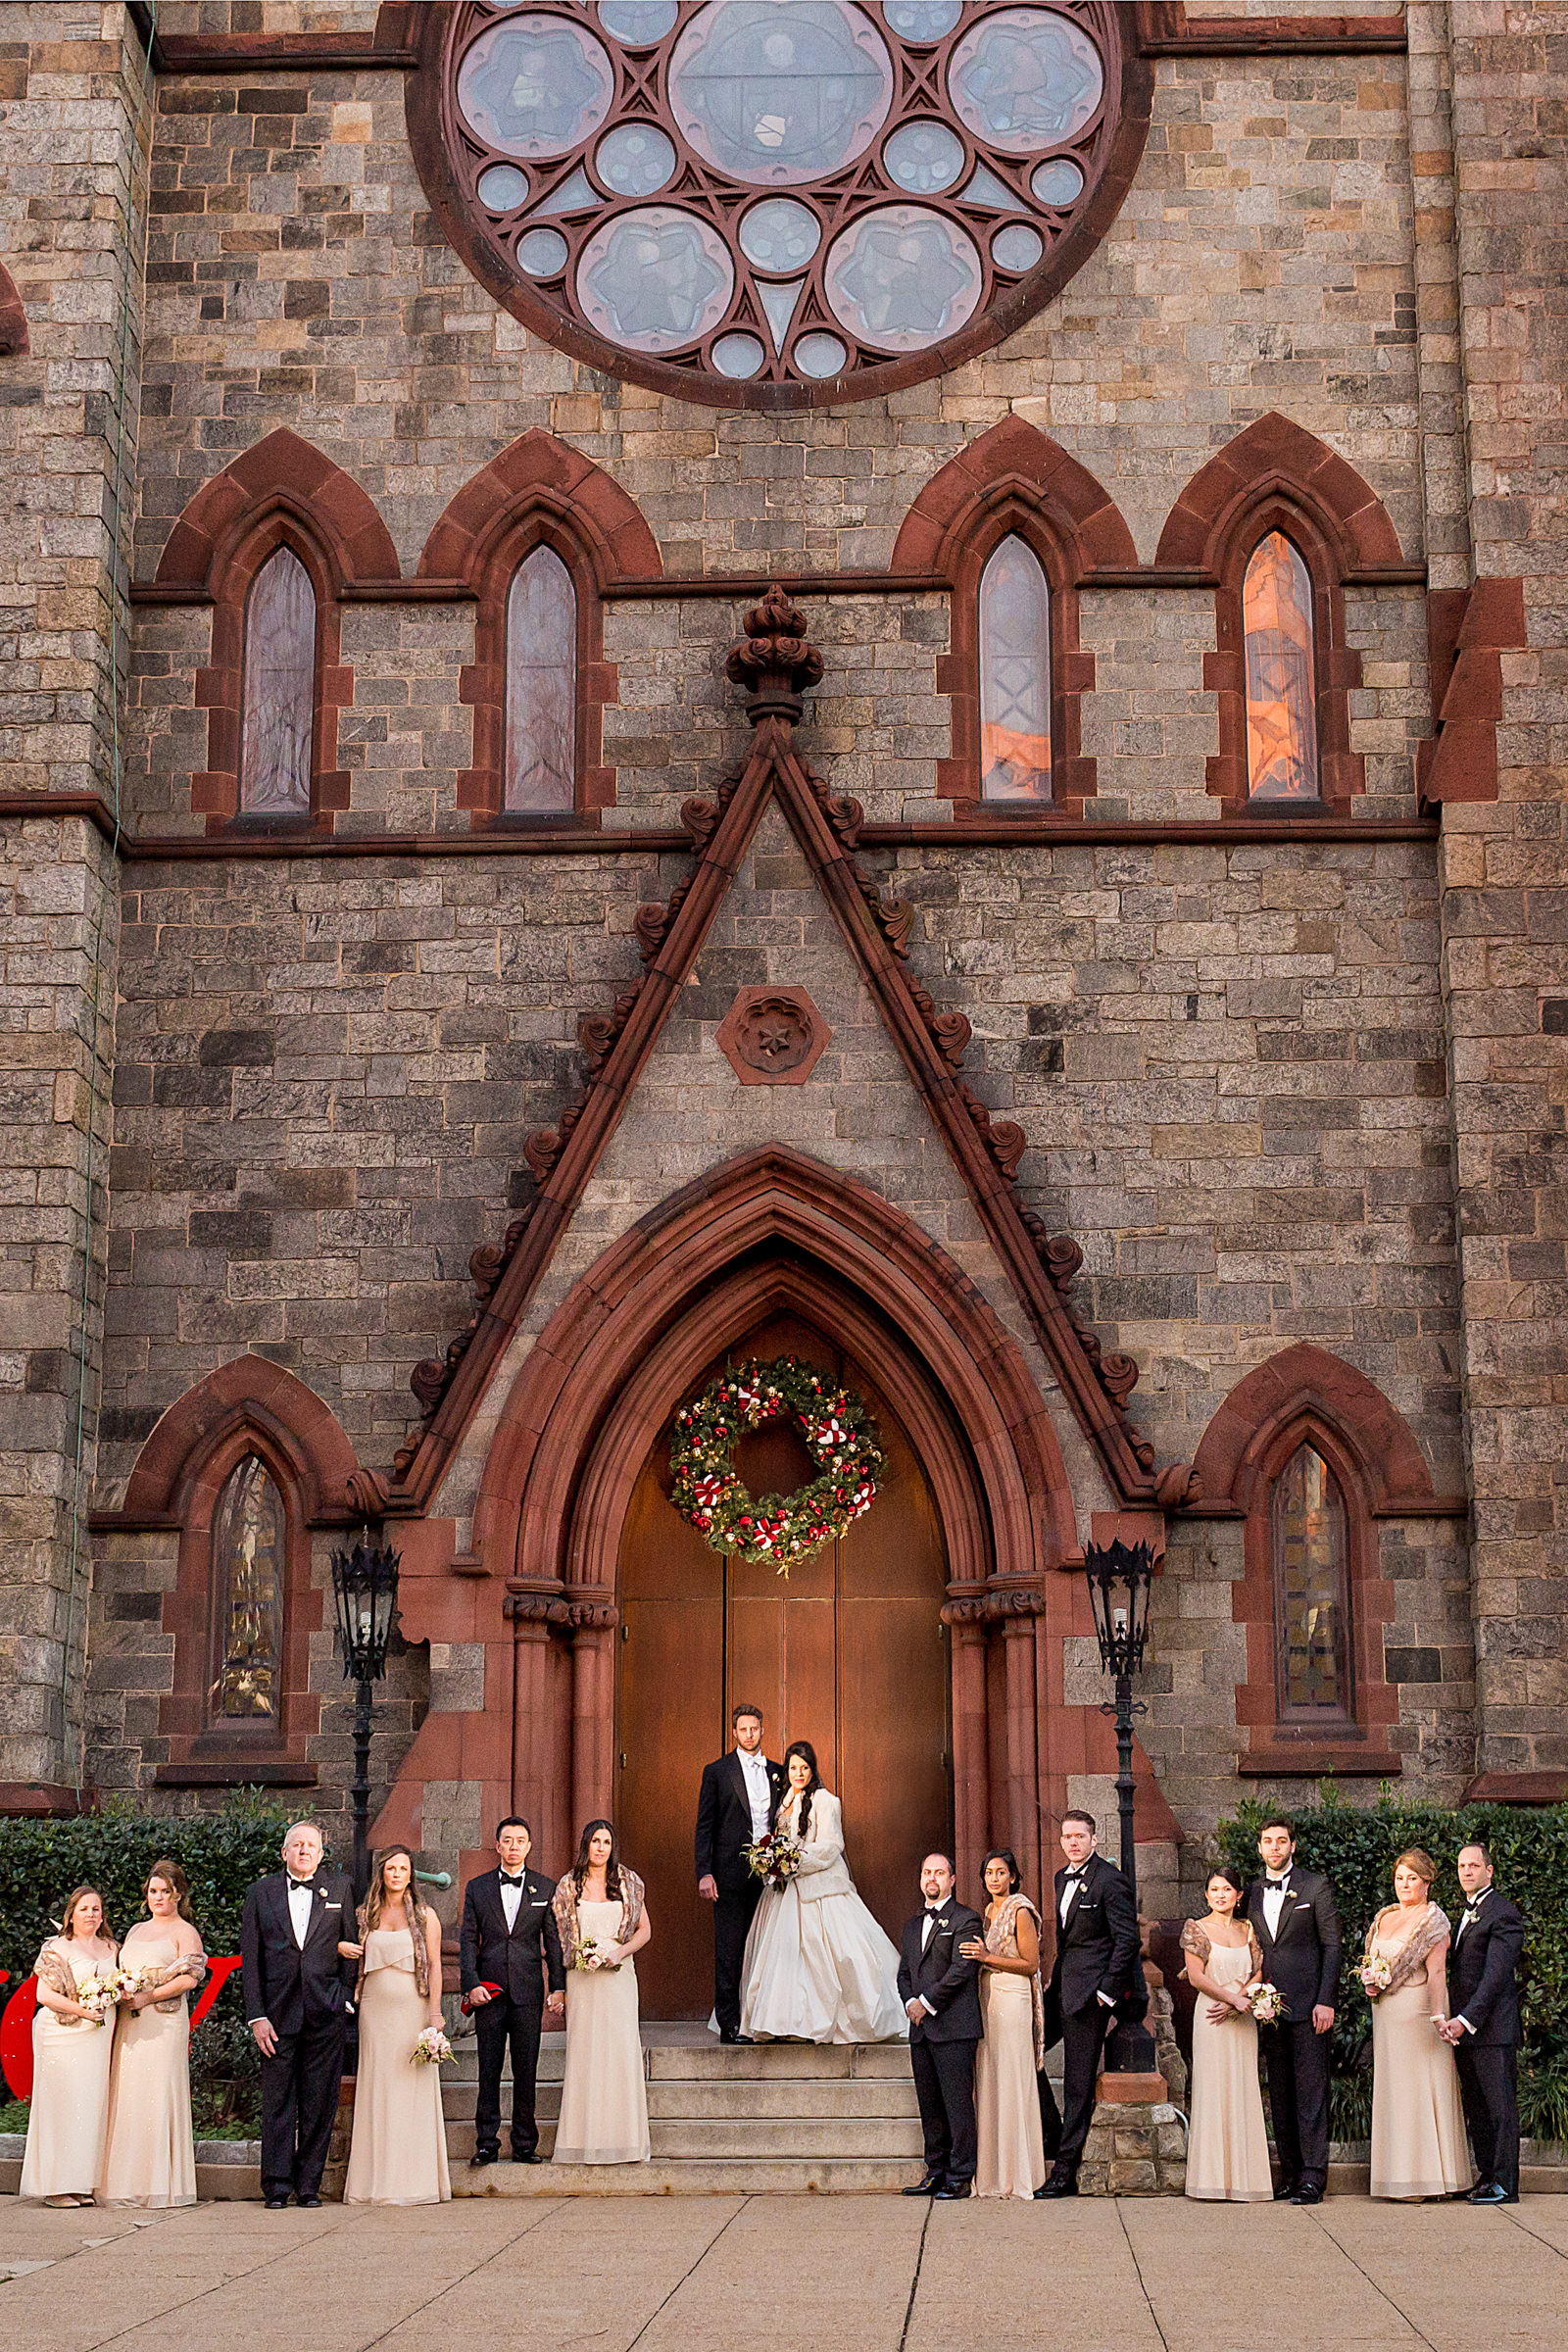 Formal group portrait outside church - photo by Procopio Photography